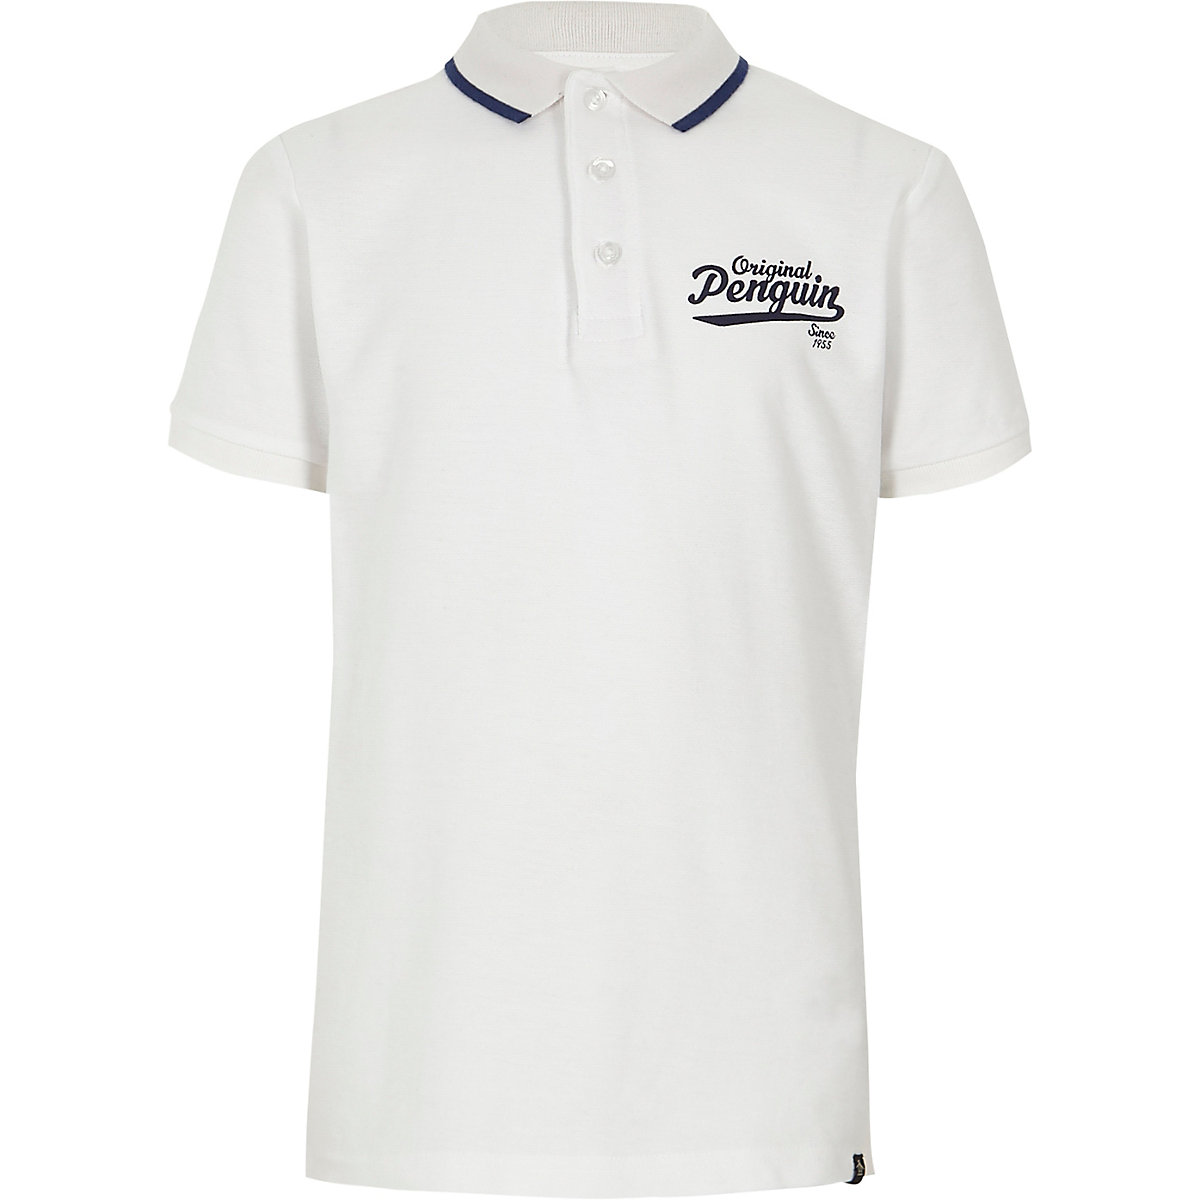 Boys White Original Penguin Polo Shirt Polo Shirts Sale Boys